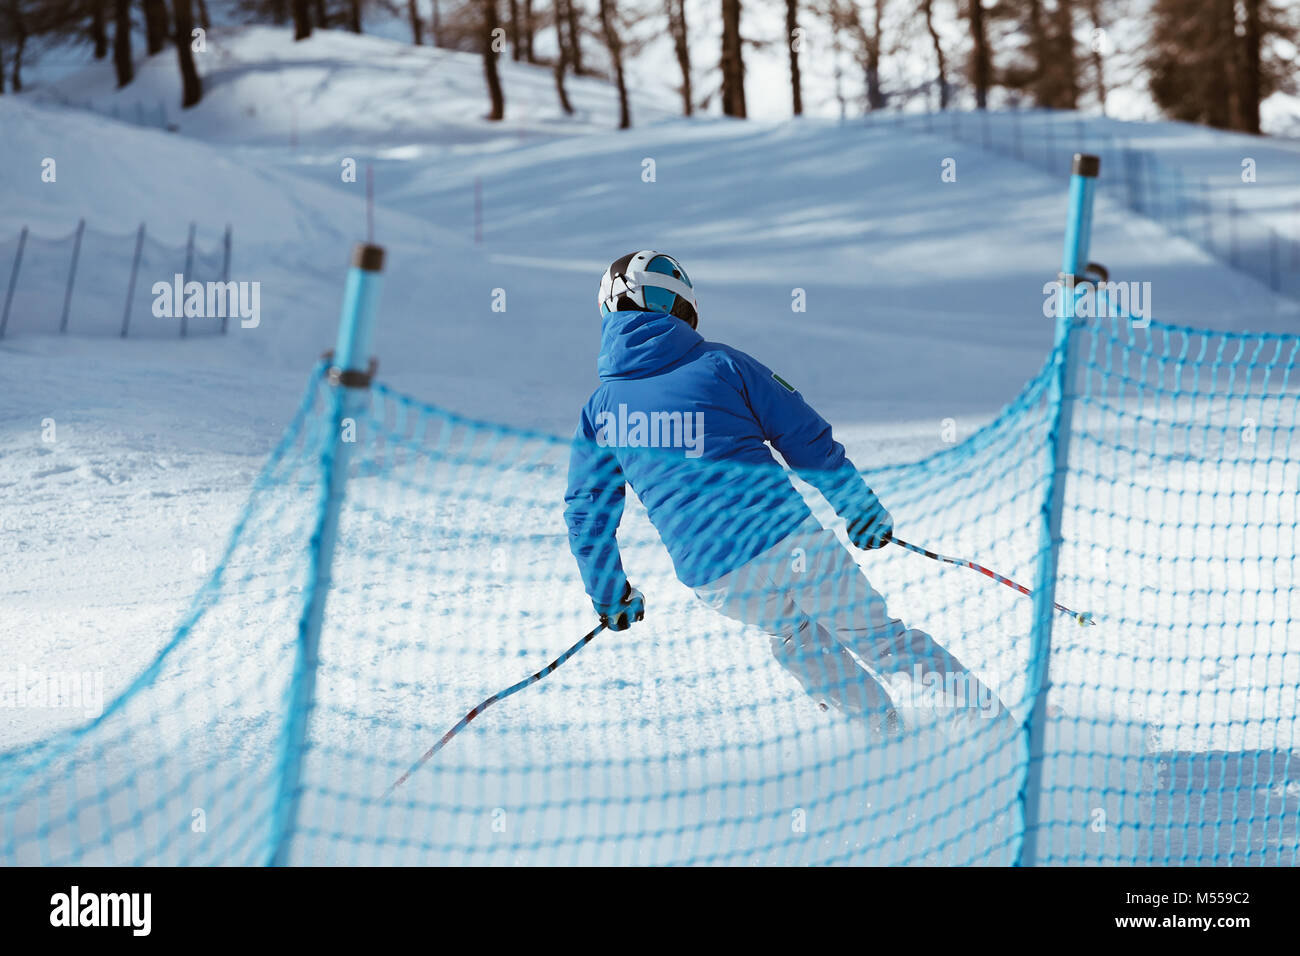 Skier skiing down the slope - downhill in high mountains. - Stock Image